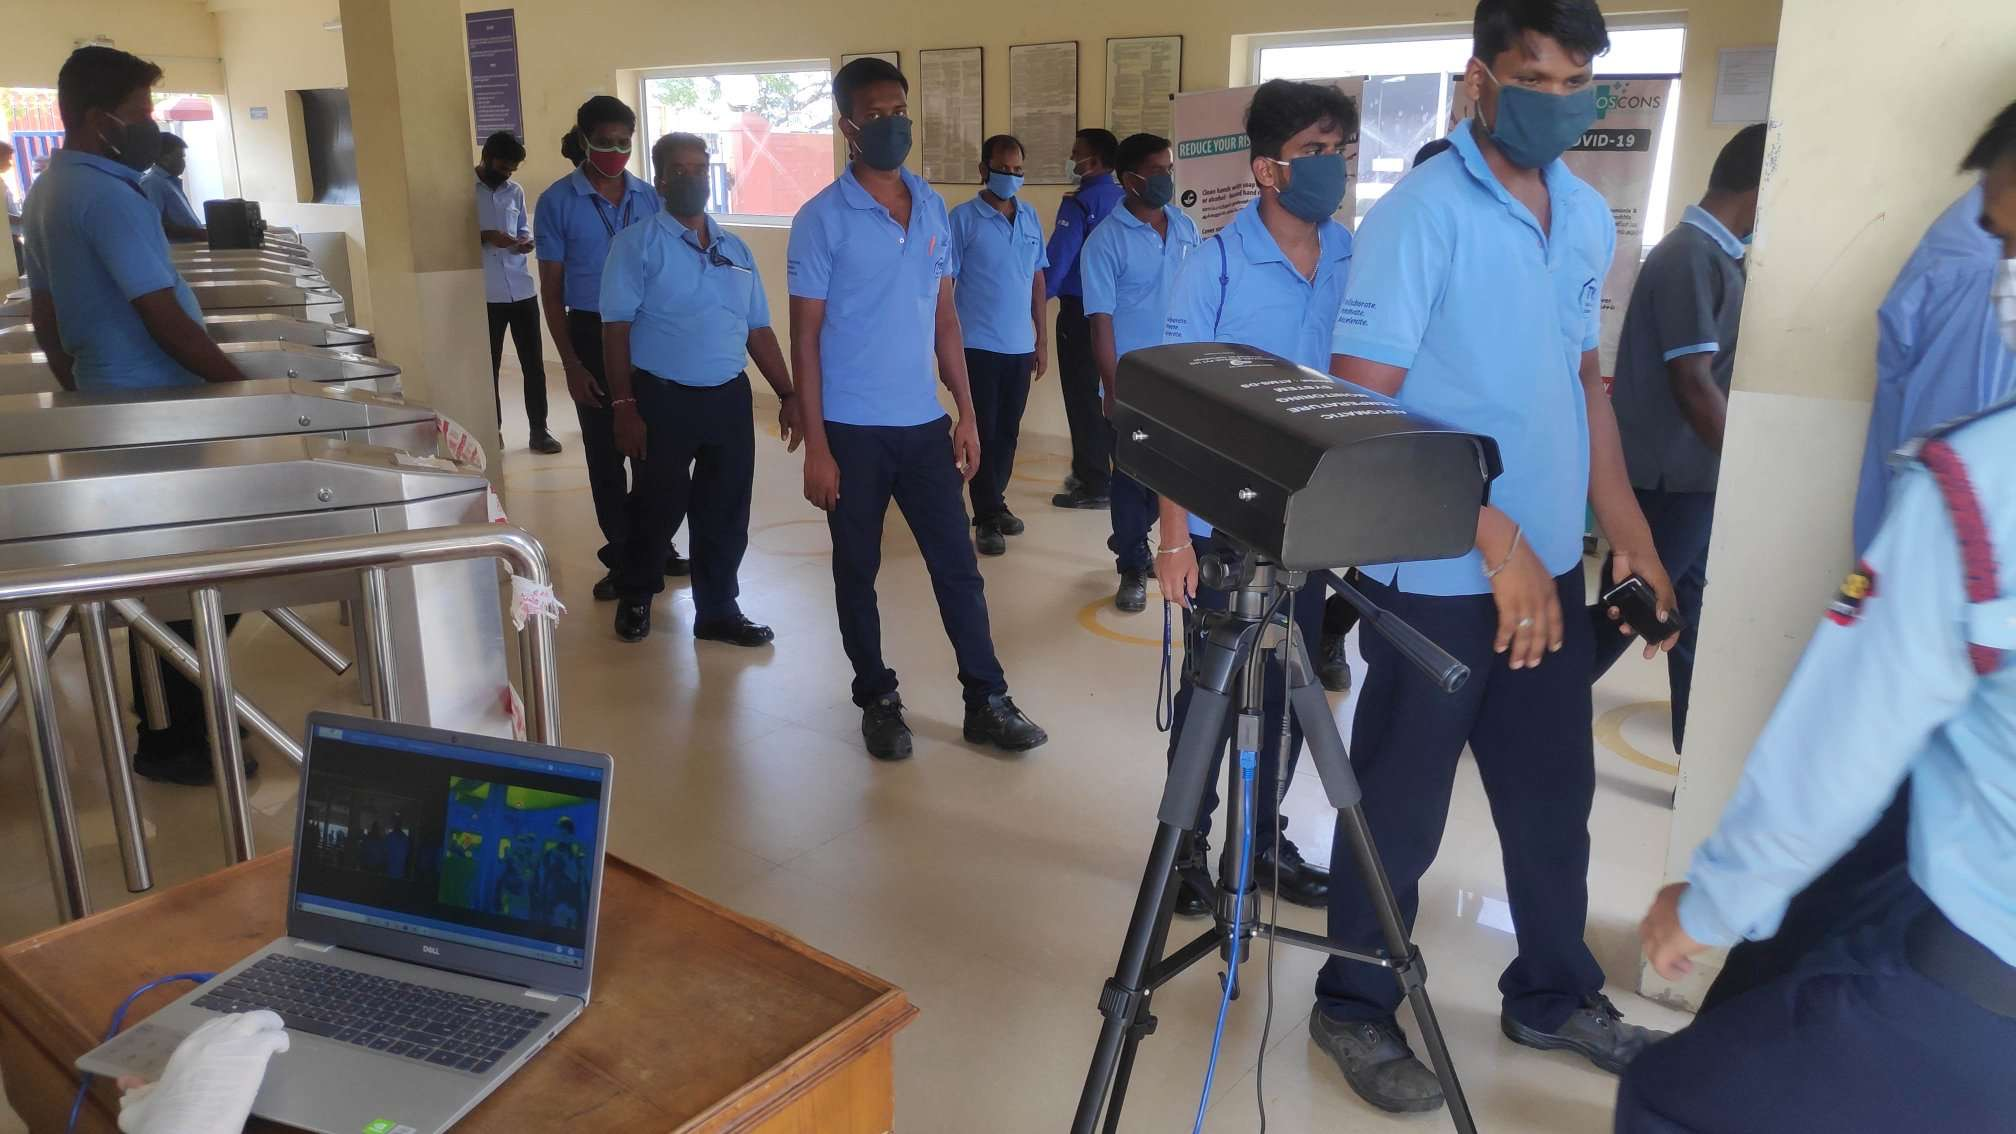 The advantage of body temperature thermal imaging system